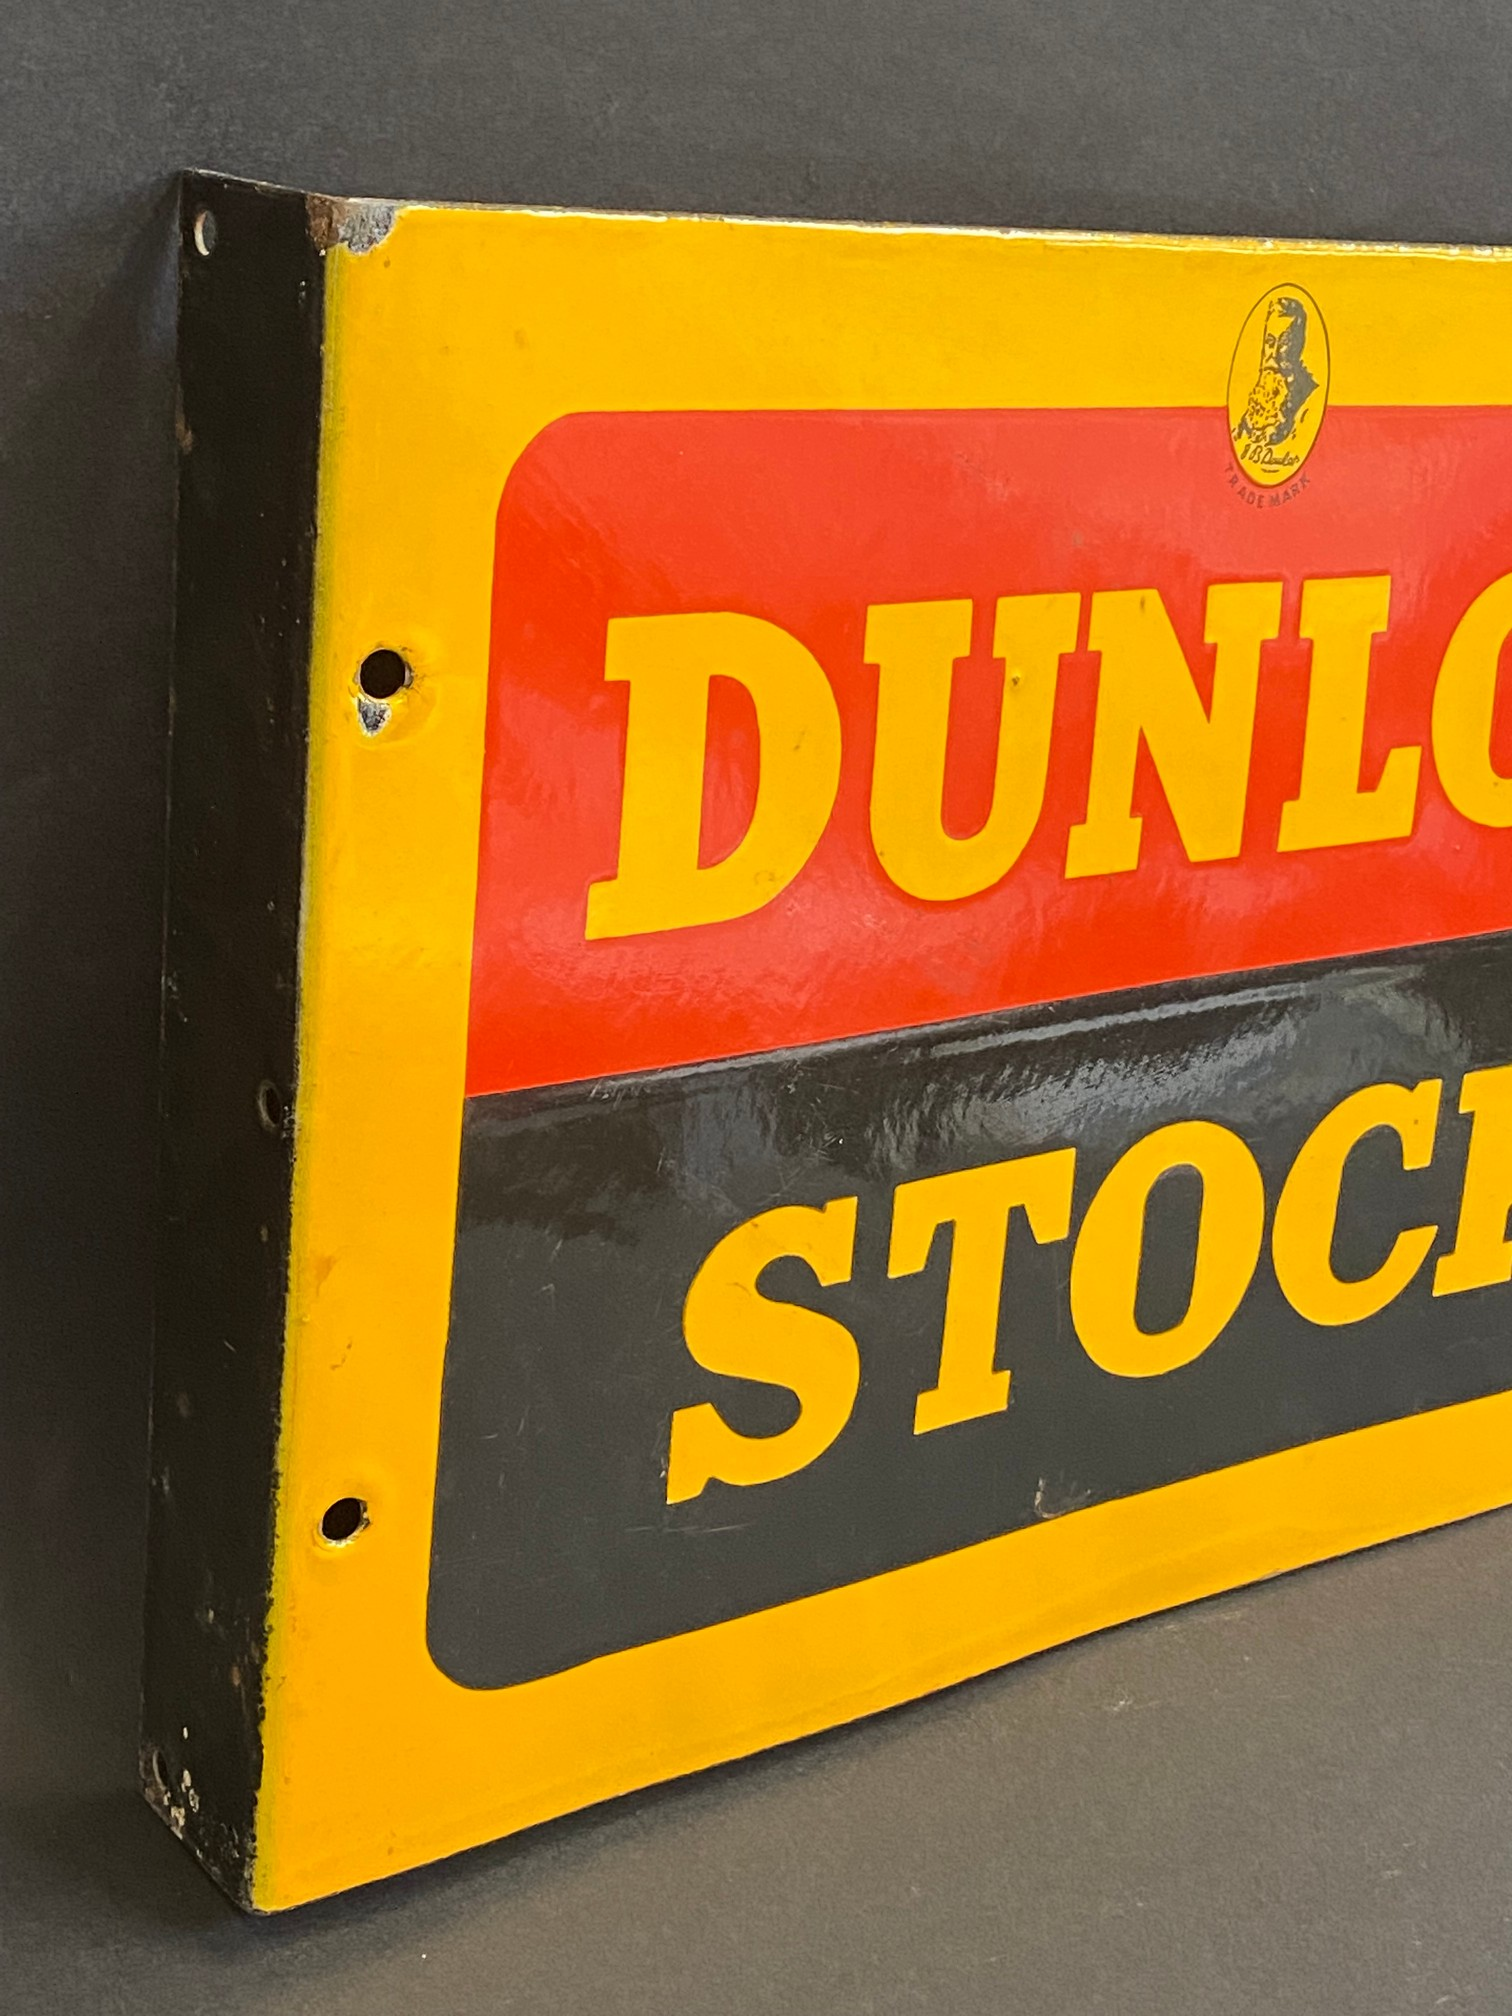 A Dunlop Stock double sided enamel sign with hanging flange, in near mint condition, made by Sur - Image 3 of 4